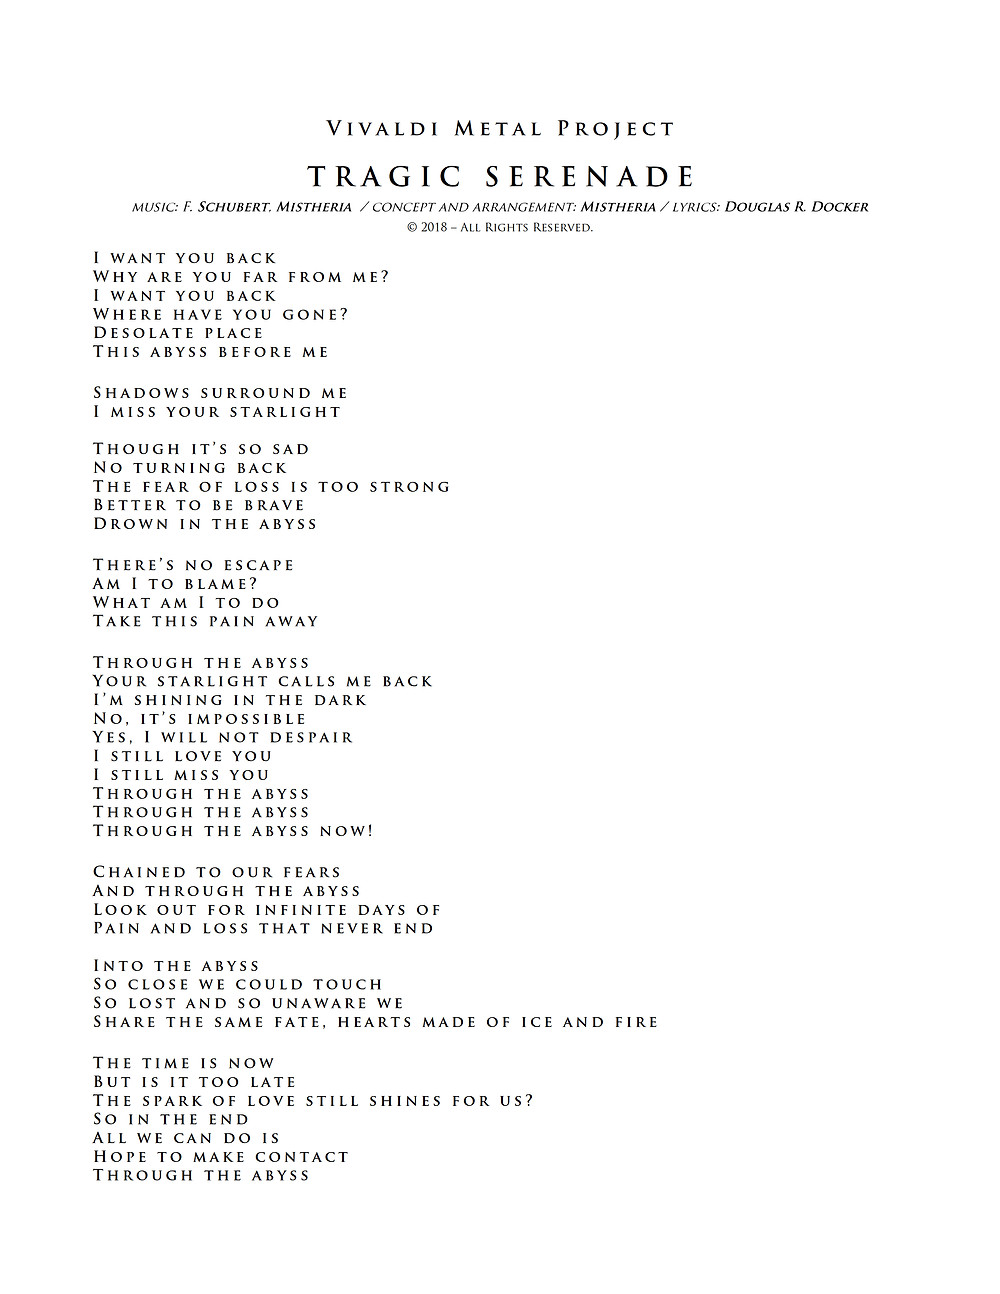 Vivaldi Metal Project - Tragic Serenade - Lyrics